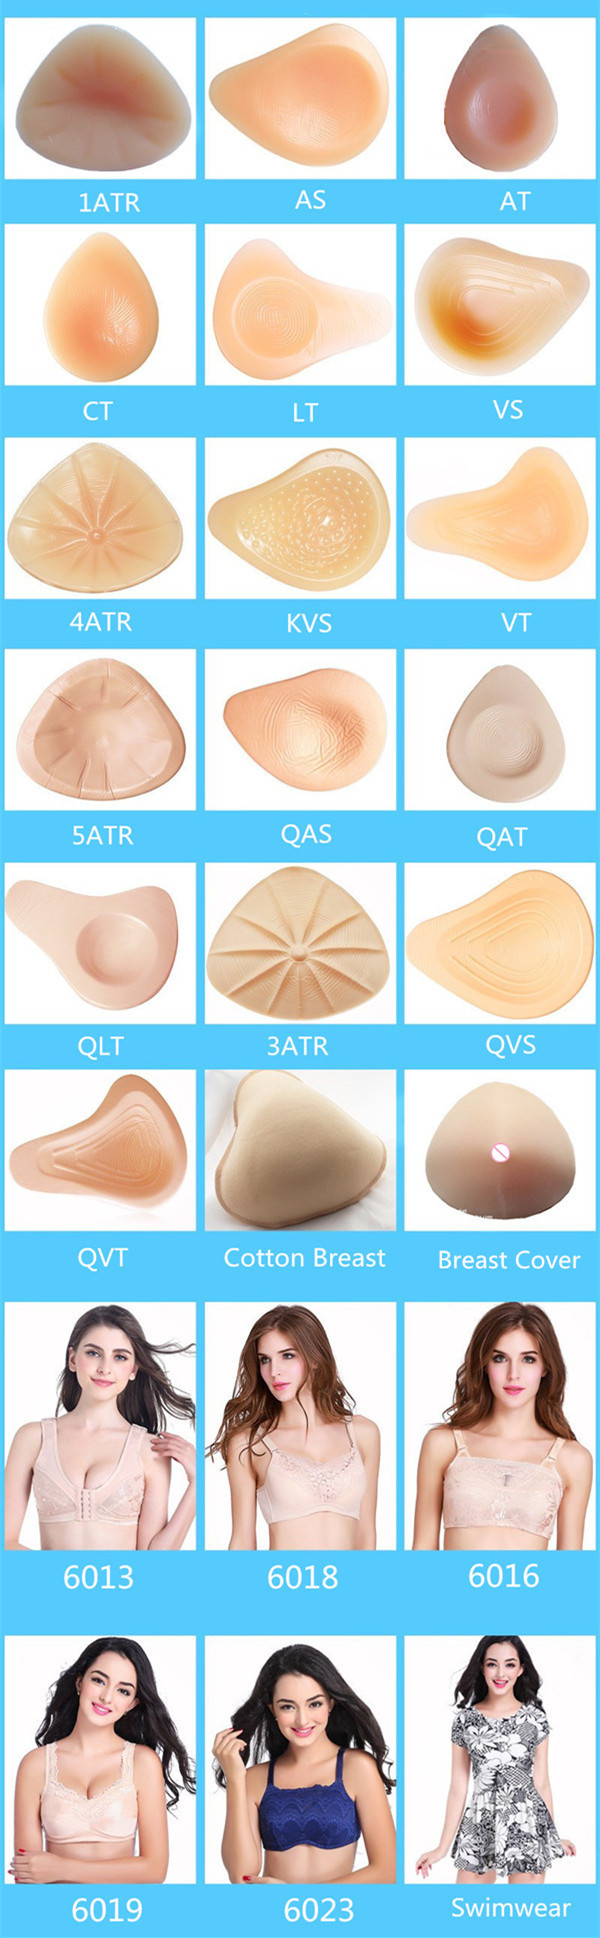 ONEFENG New Design 75-95ABCD Mastectomy Bra Pocket Bra for Breast Cancer Women Silicone Artificial Boobs 6030